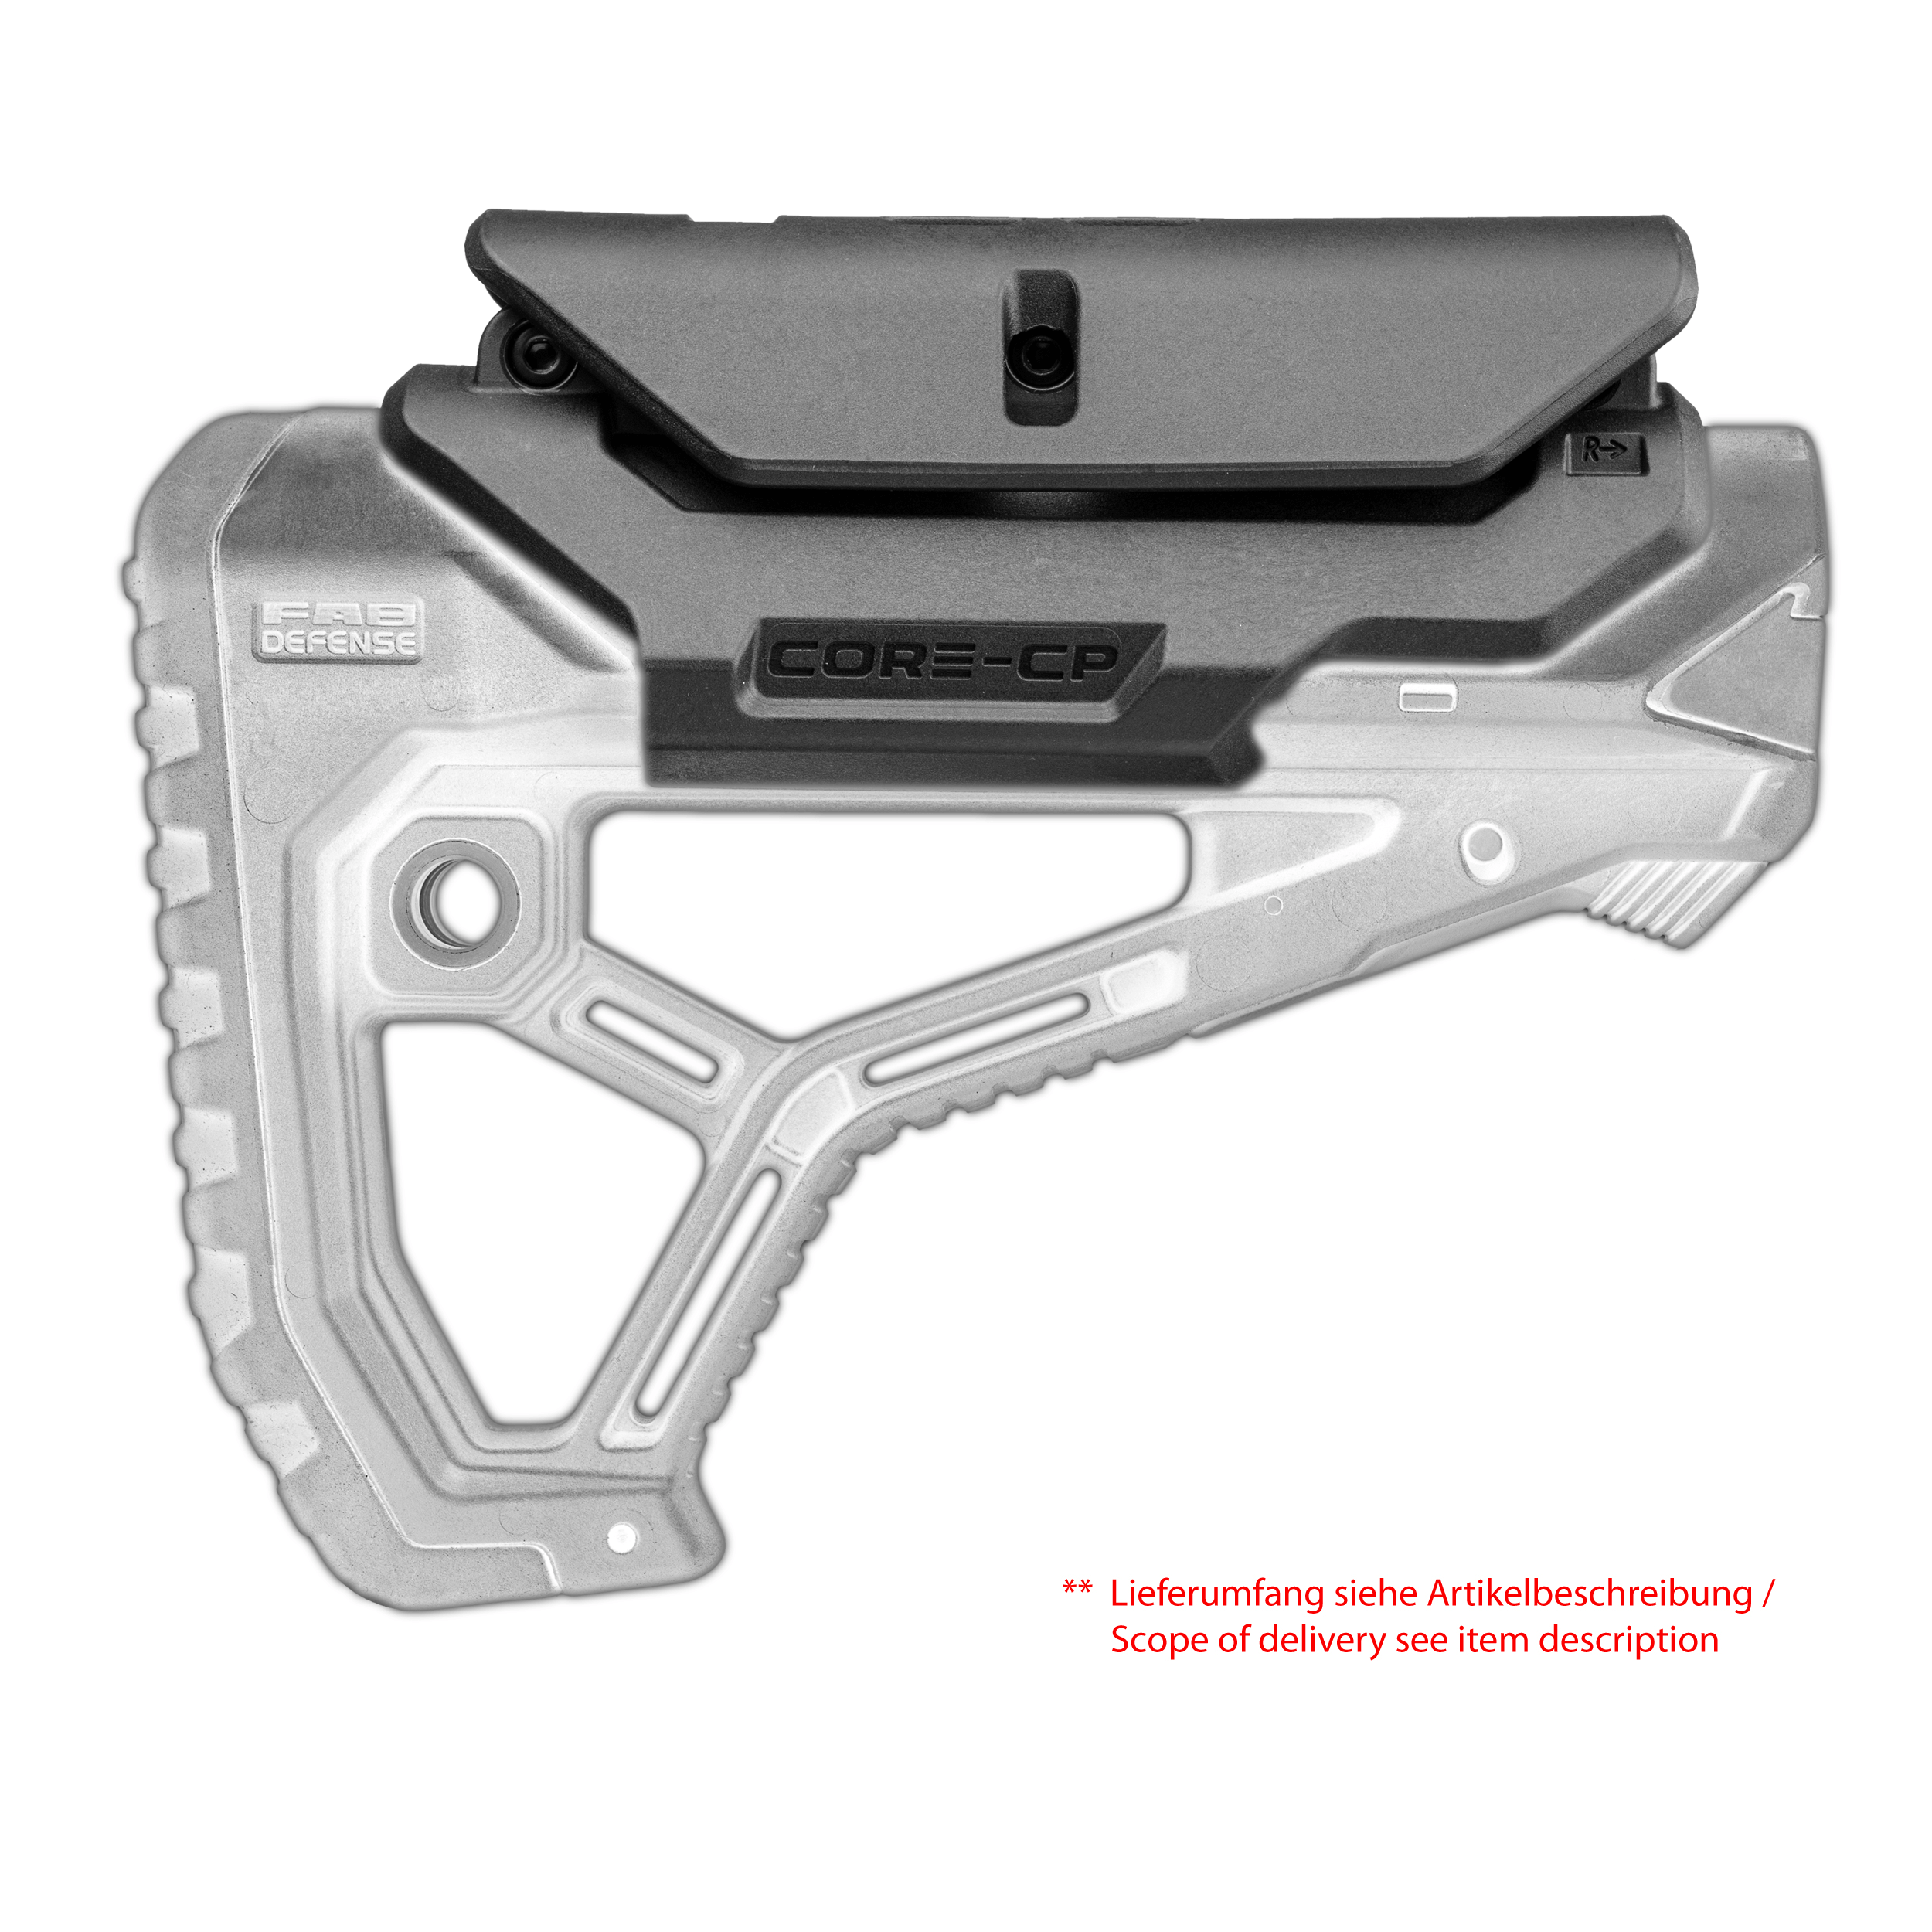 Adjustable Cheek Rest Kit for GL-CORE